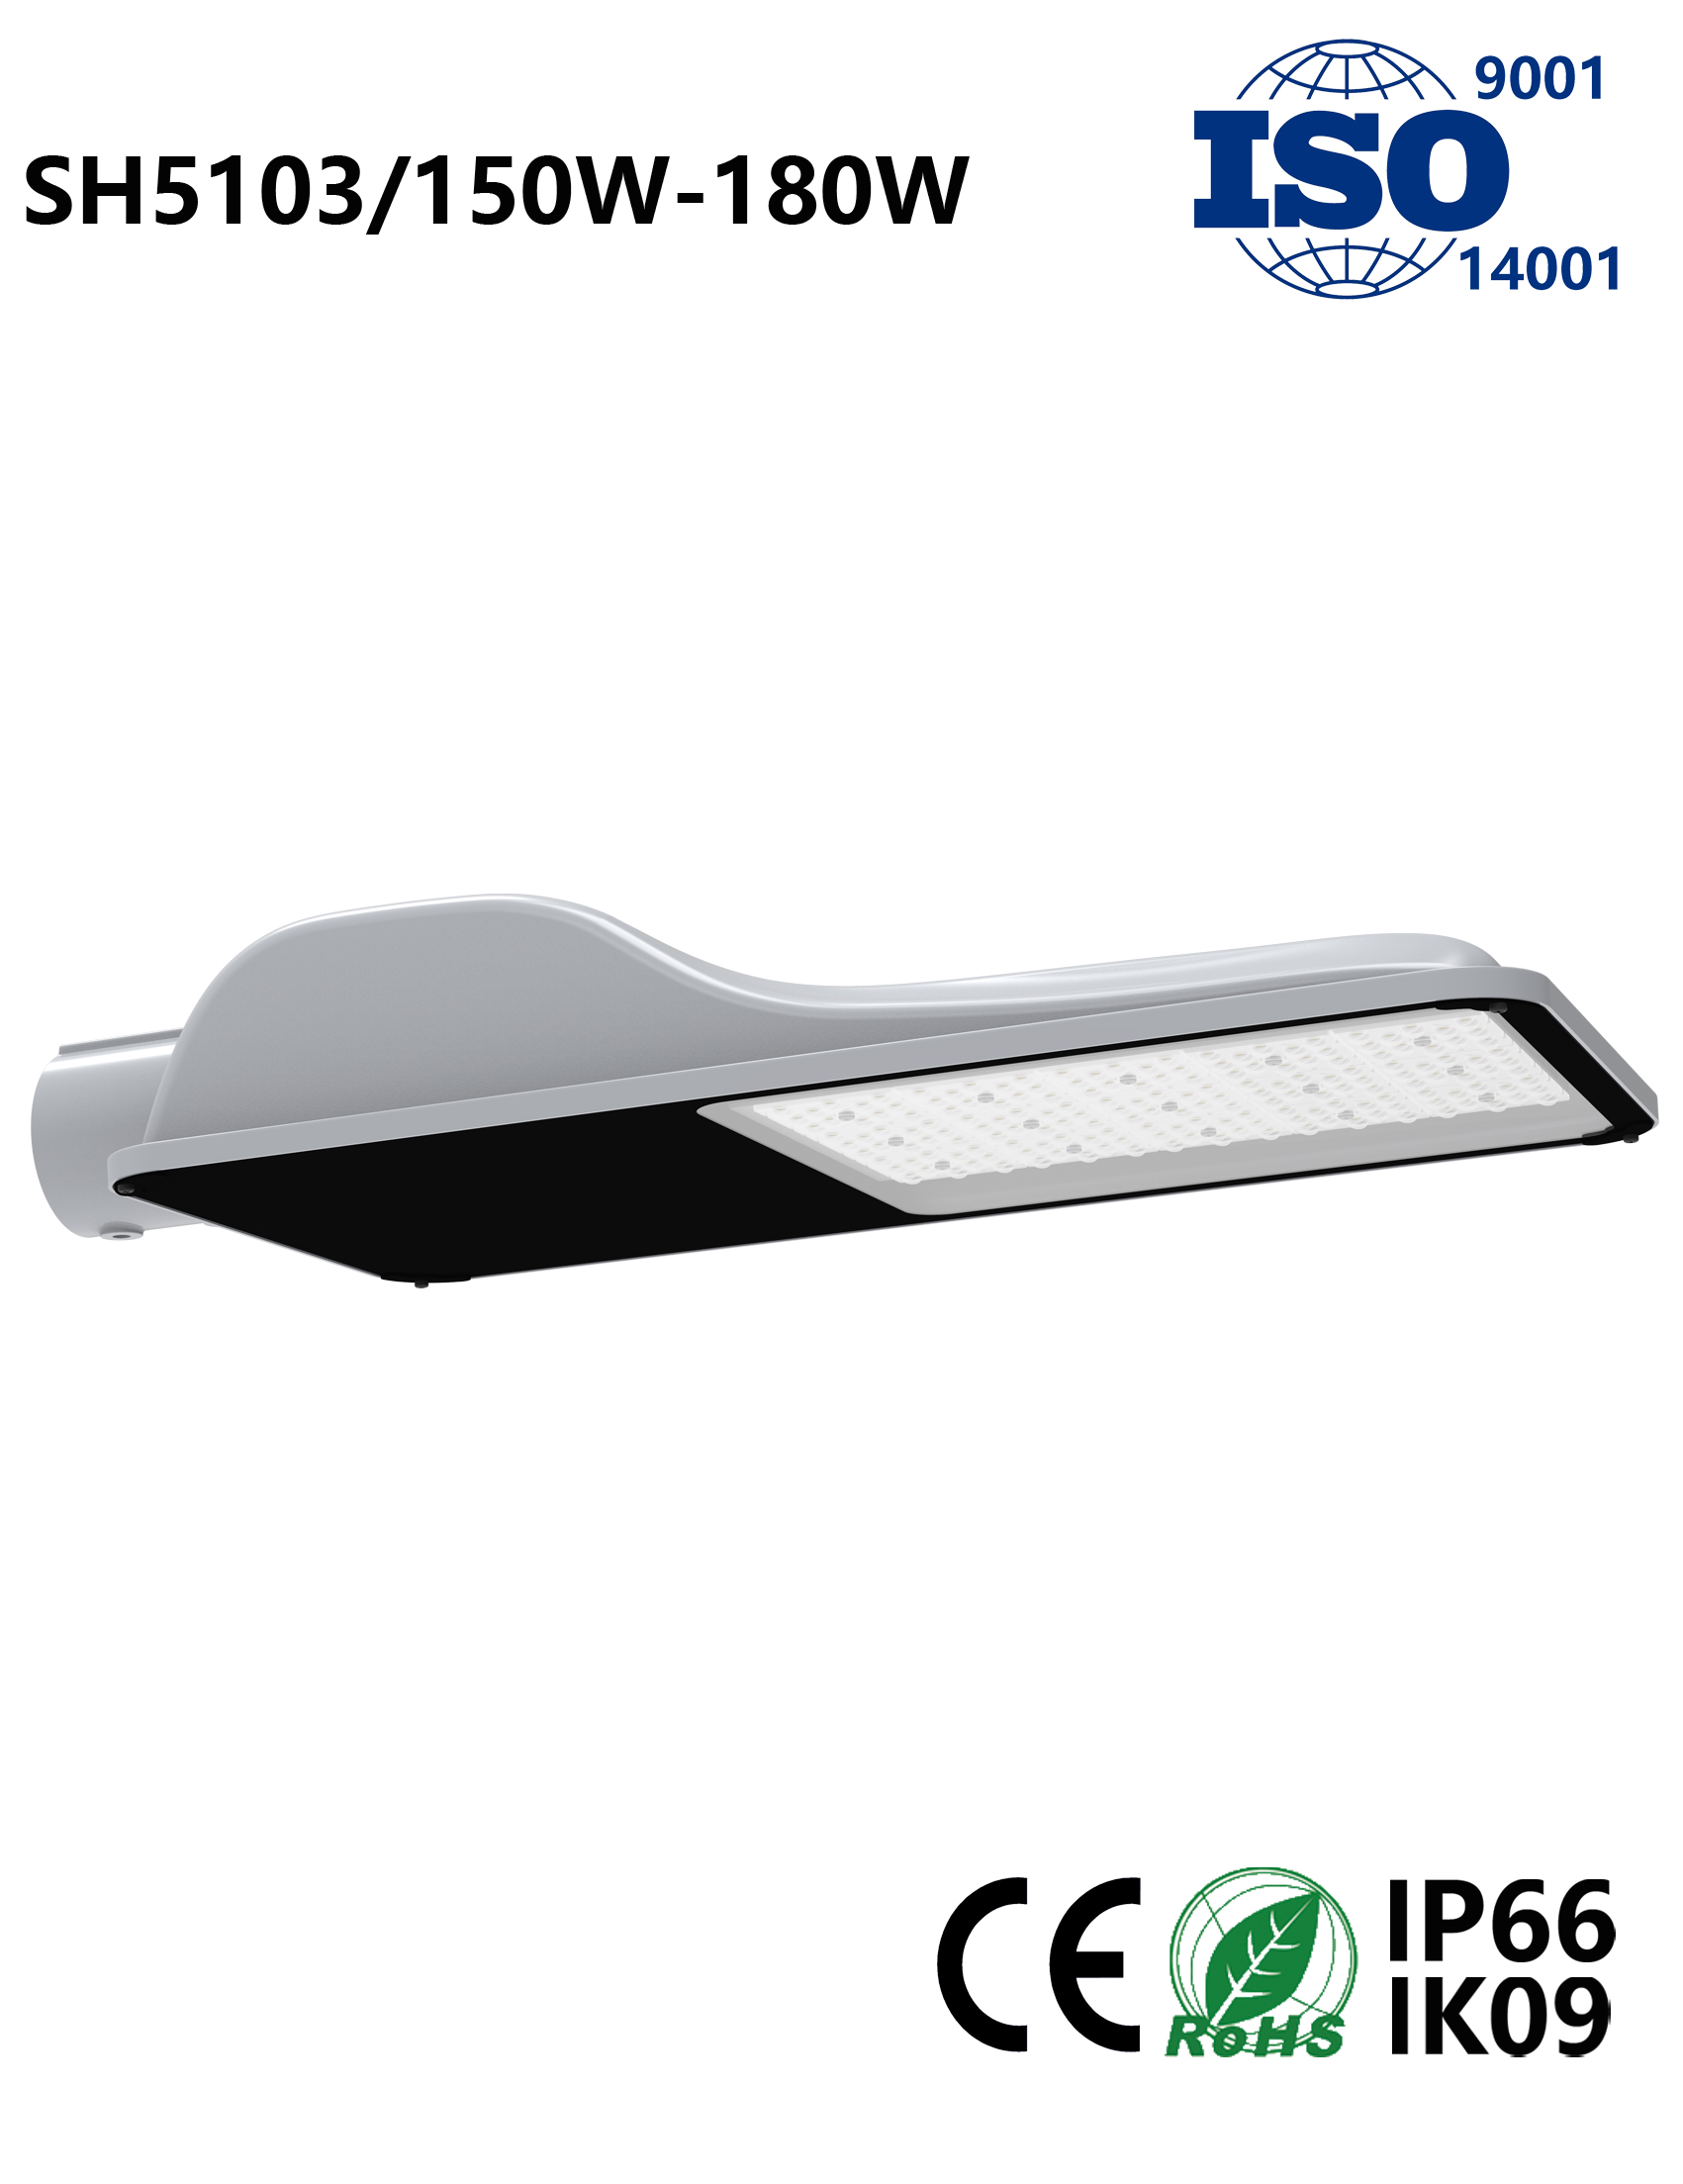 SH5103 150W-180W LED Street Light